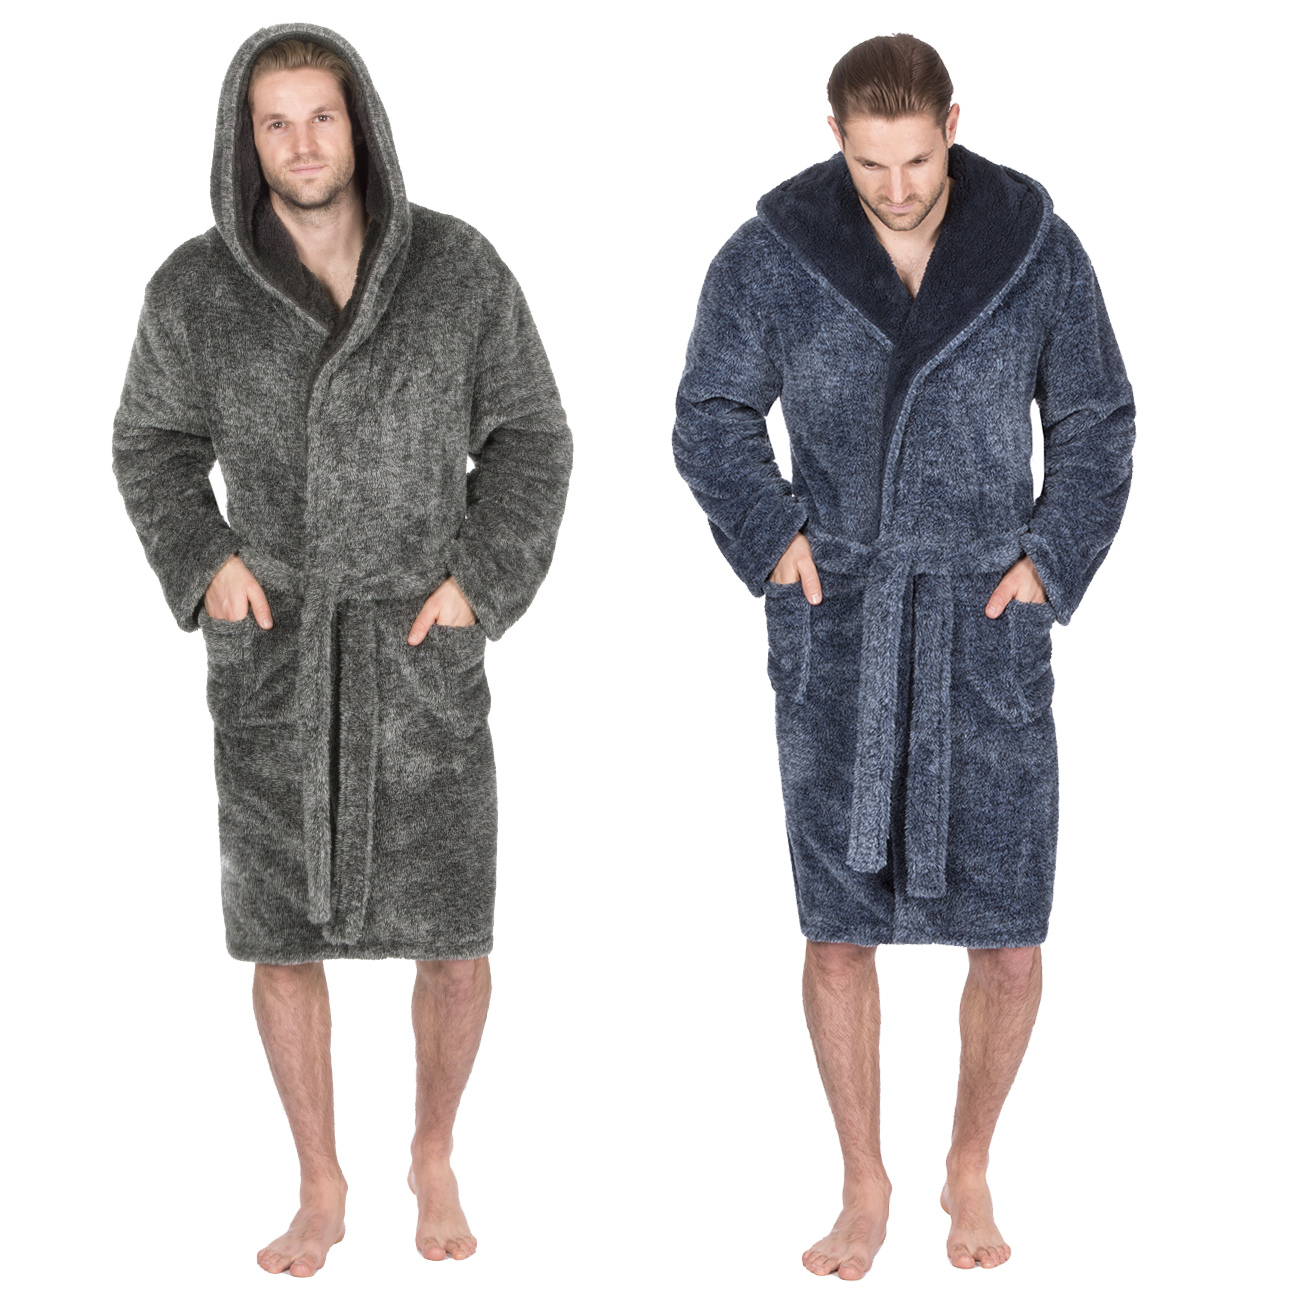 40c81cbfdc Pierre Roche Mens Gents 2 Tone Snuggle Fleece Dressing Gown Hooded Robe New